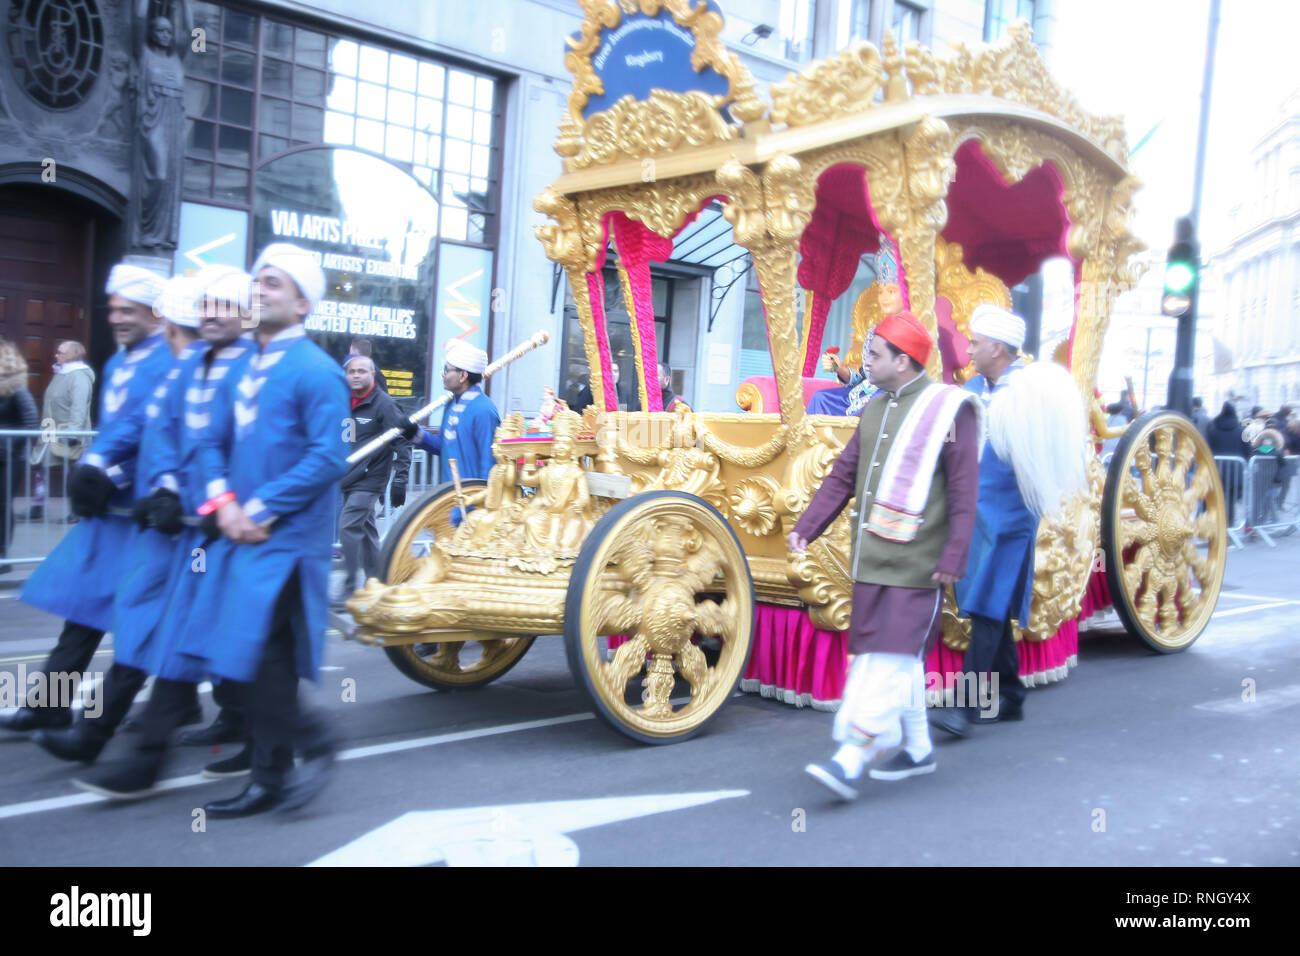 England, London, Westminster, Piccadilly, New Years Day Parade 2019. - Stock Image